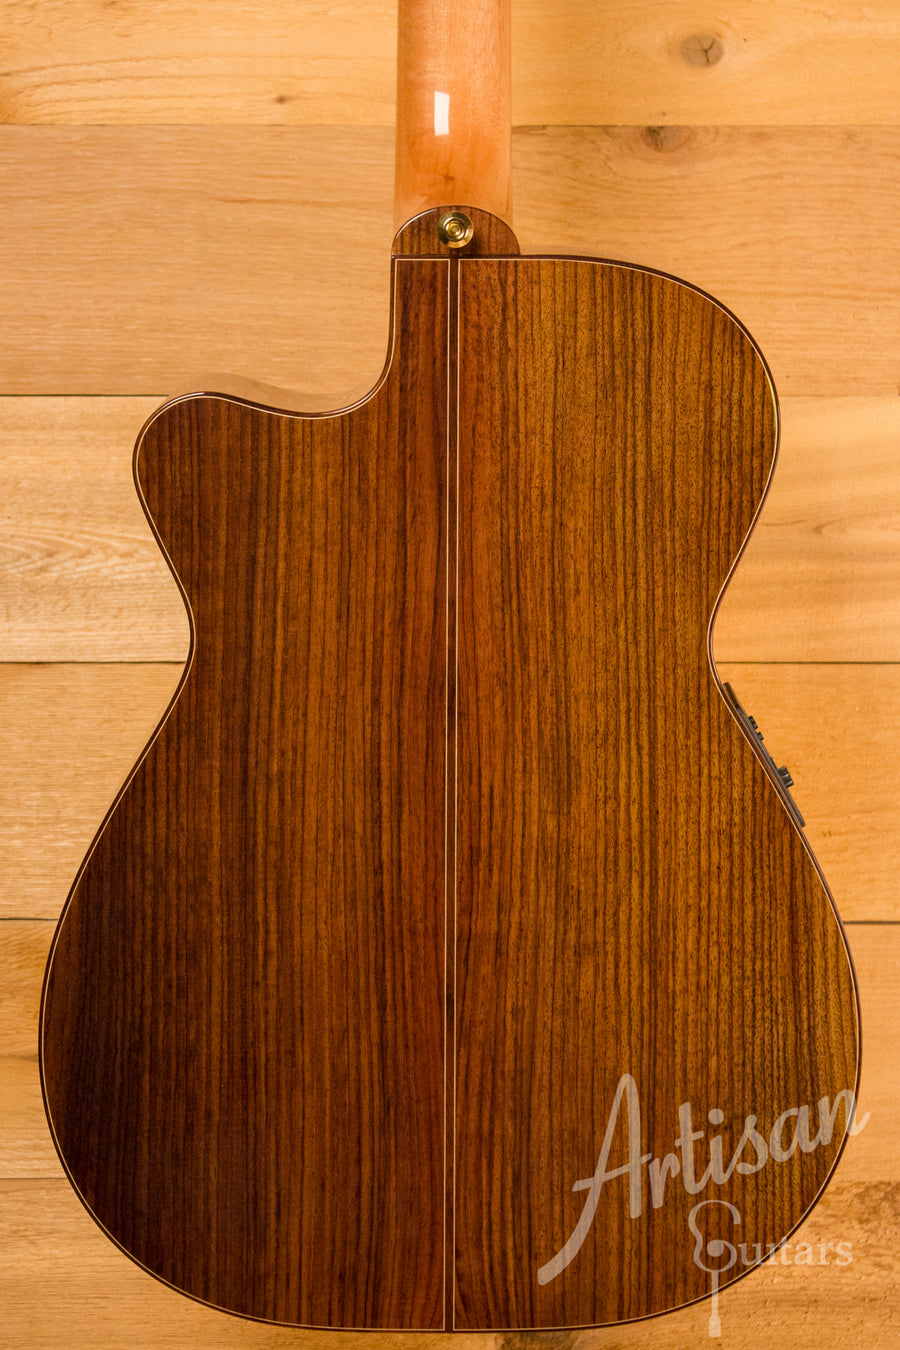 Maton EM 100C 808 Messiah Series Guitar with Sitka and Indian Rosewood Cutaway AP5 Pro ID-10827 - Artisan Guitars